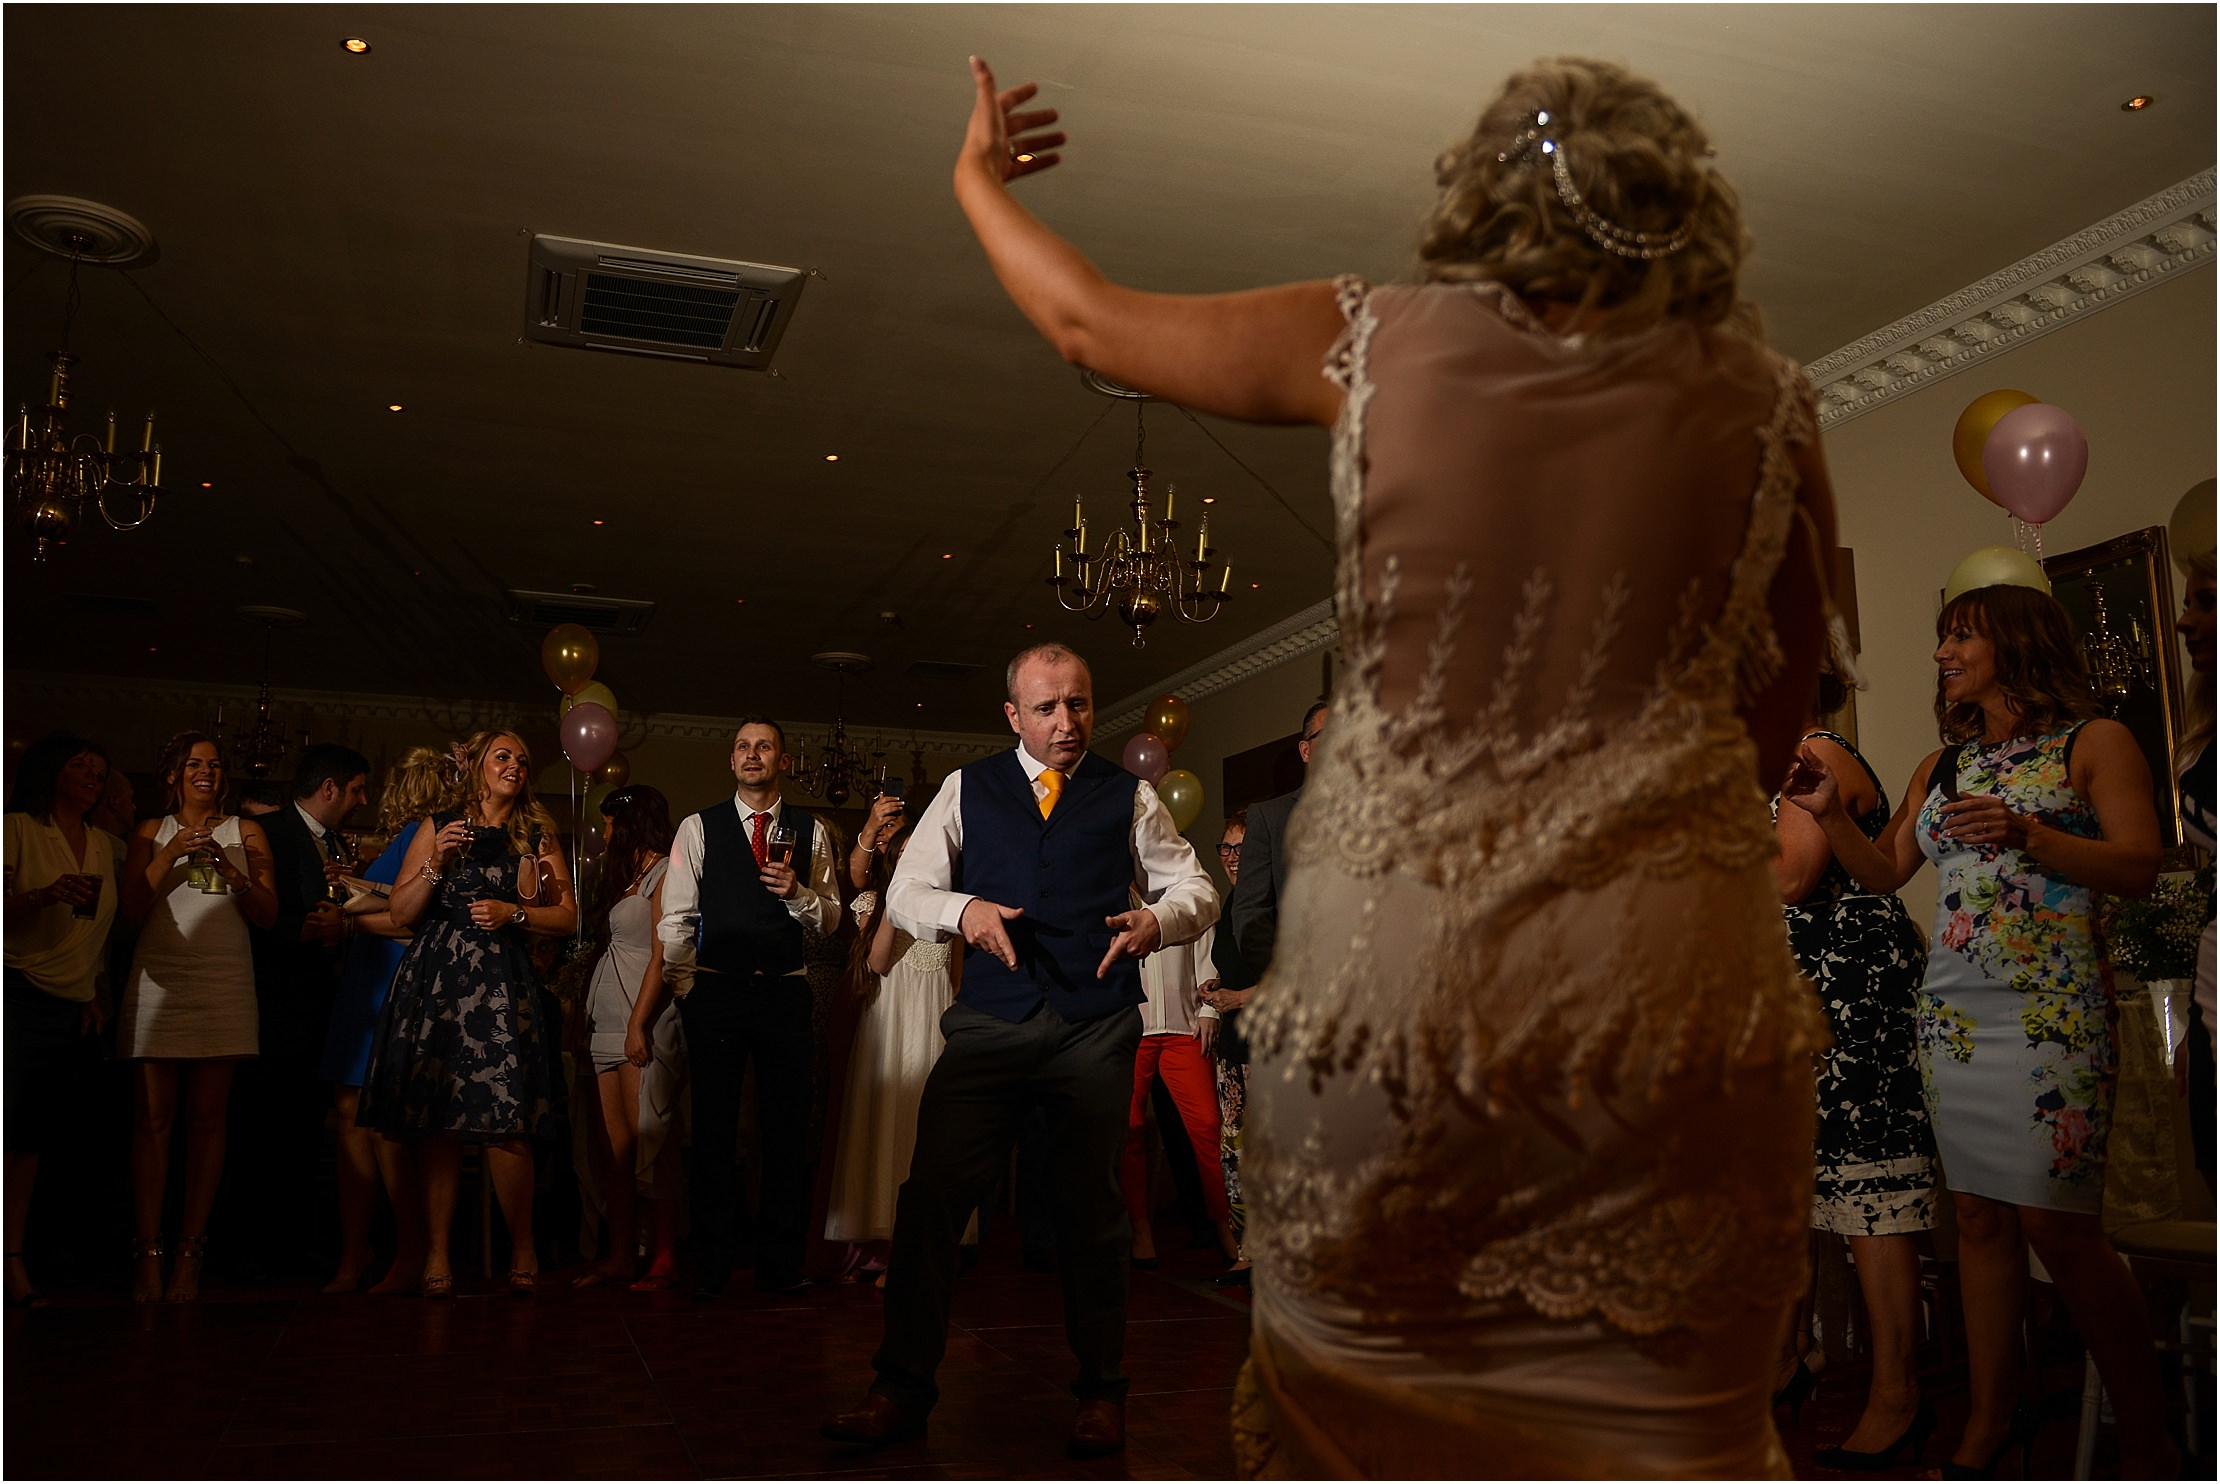 dan-wootton-wedding-photography-2015 - 095.jpg